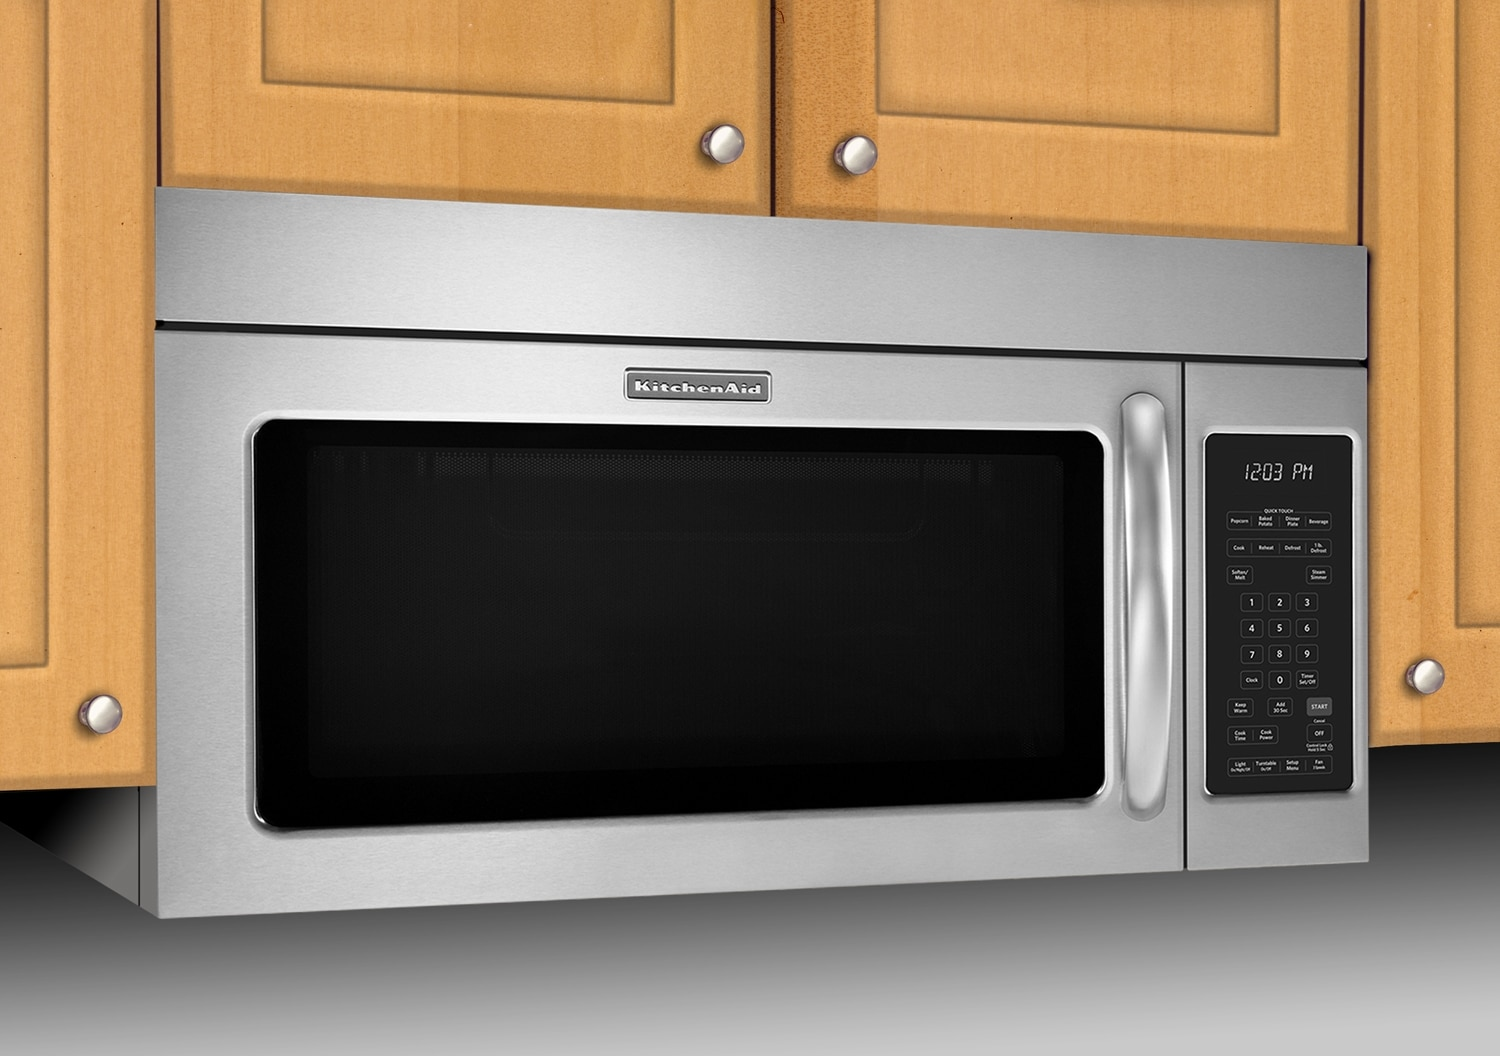 Kitchenaid undercounter microwave bestmicrowave - Kitchenaid microwave ...